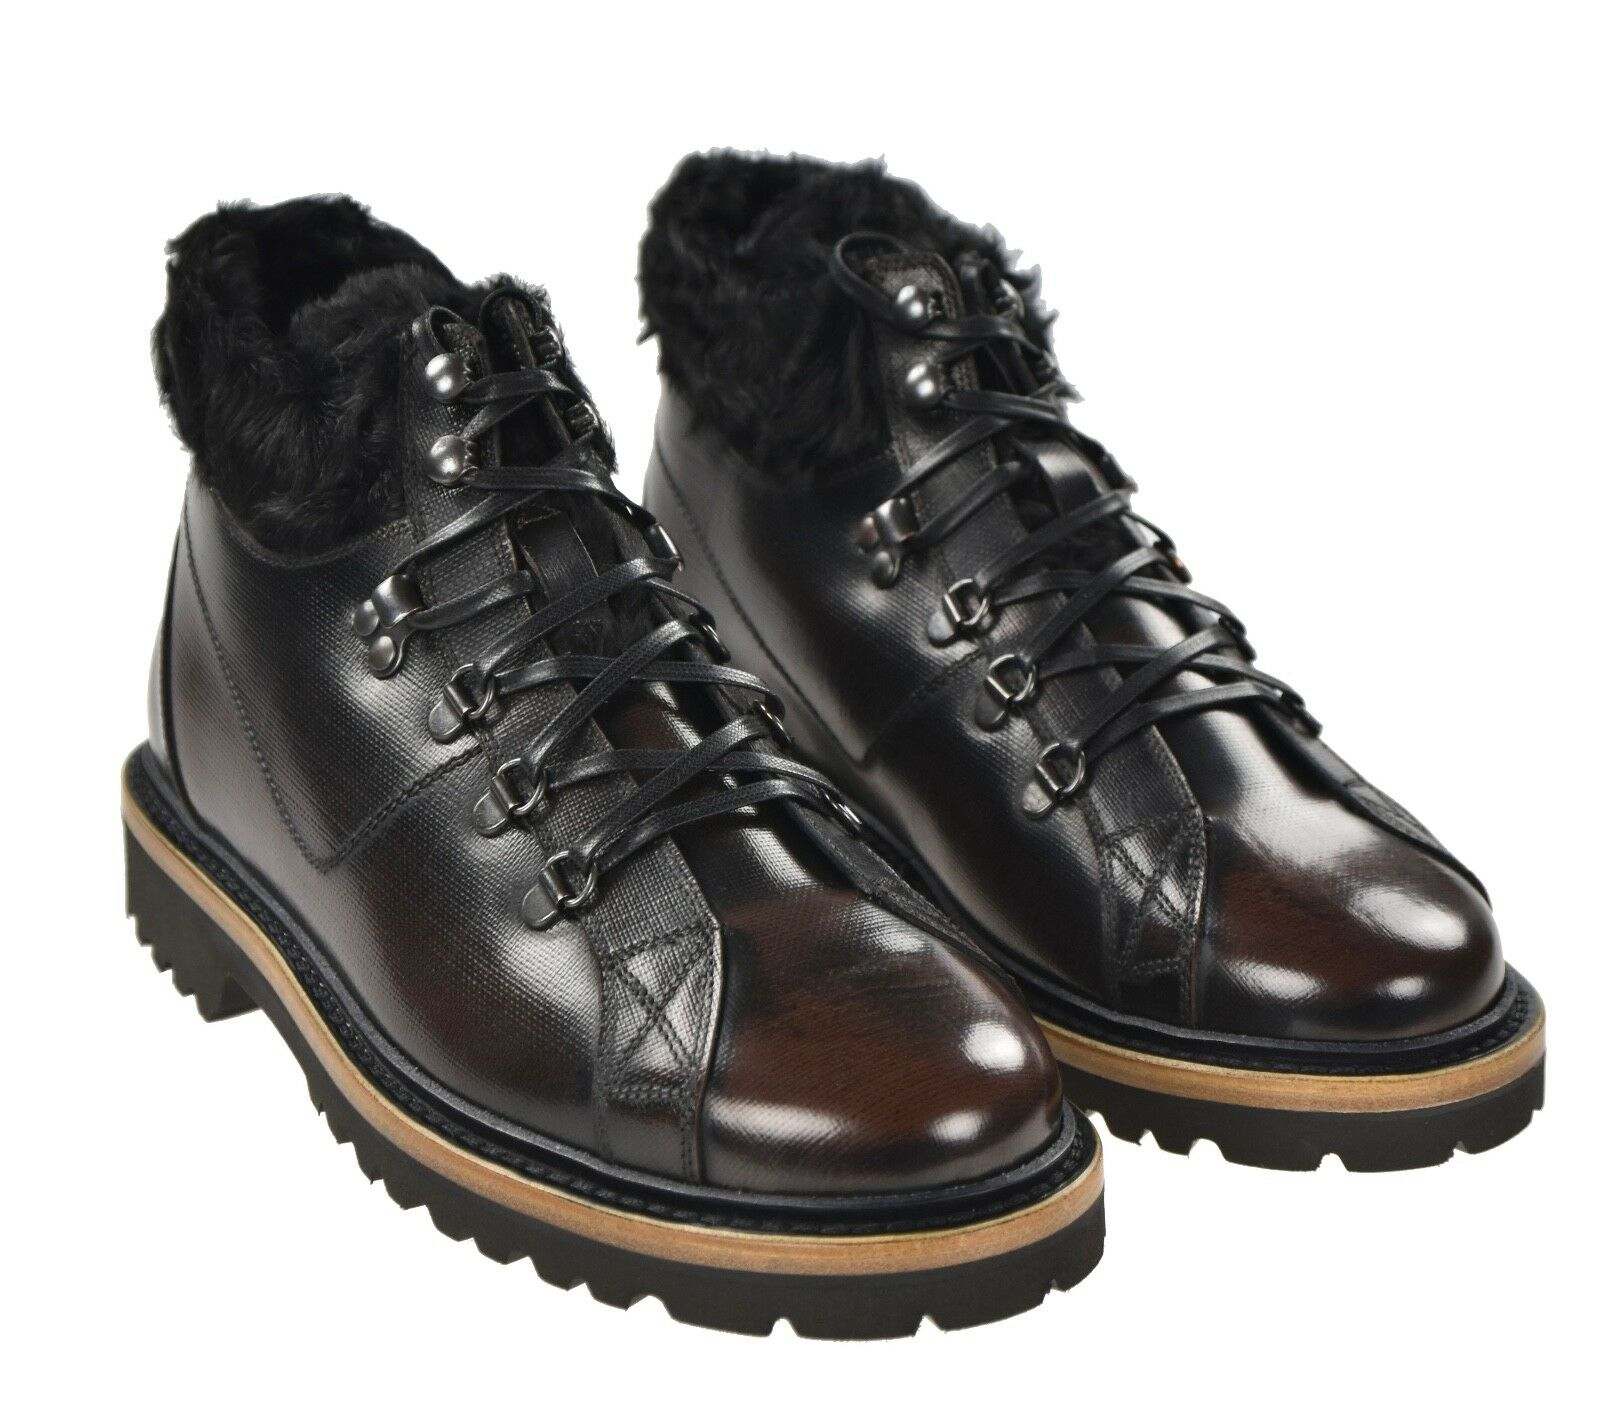 NEW KITON SHOES 100% LEATHER WITH ASTRAKAN FUR  SIZE 11 US 44 KSC49